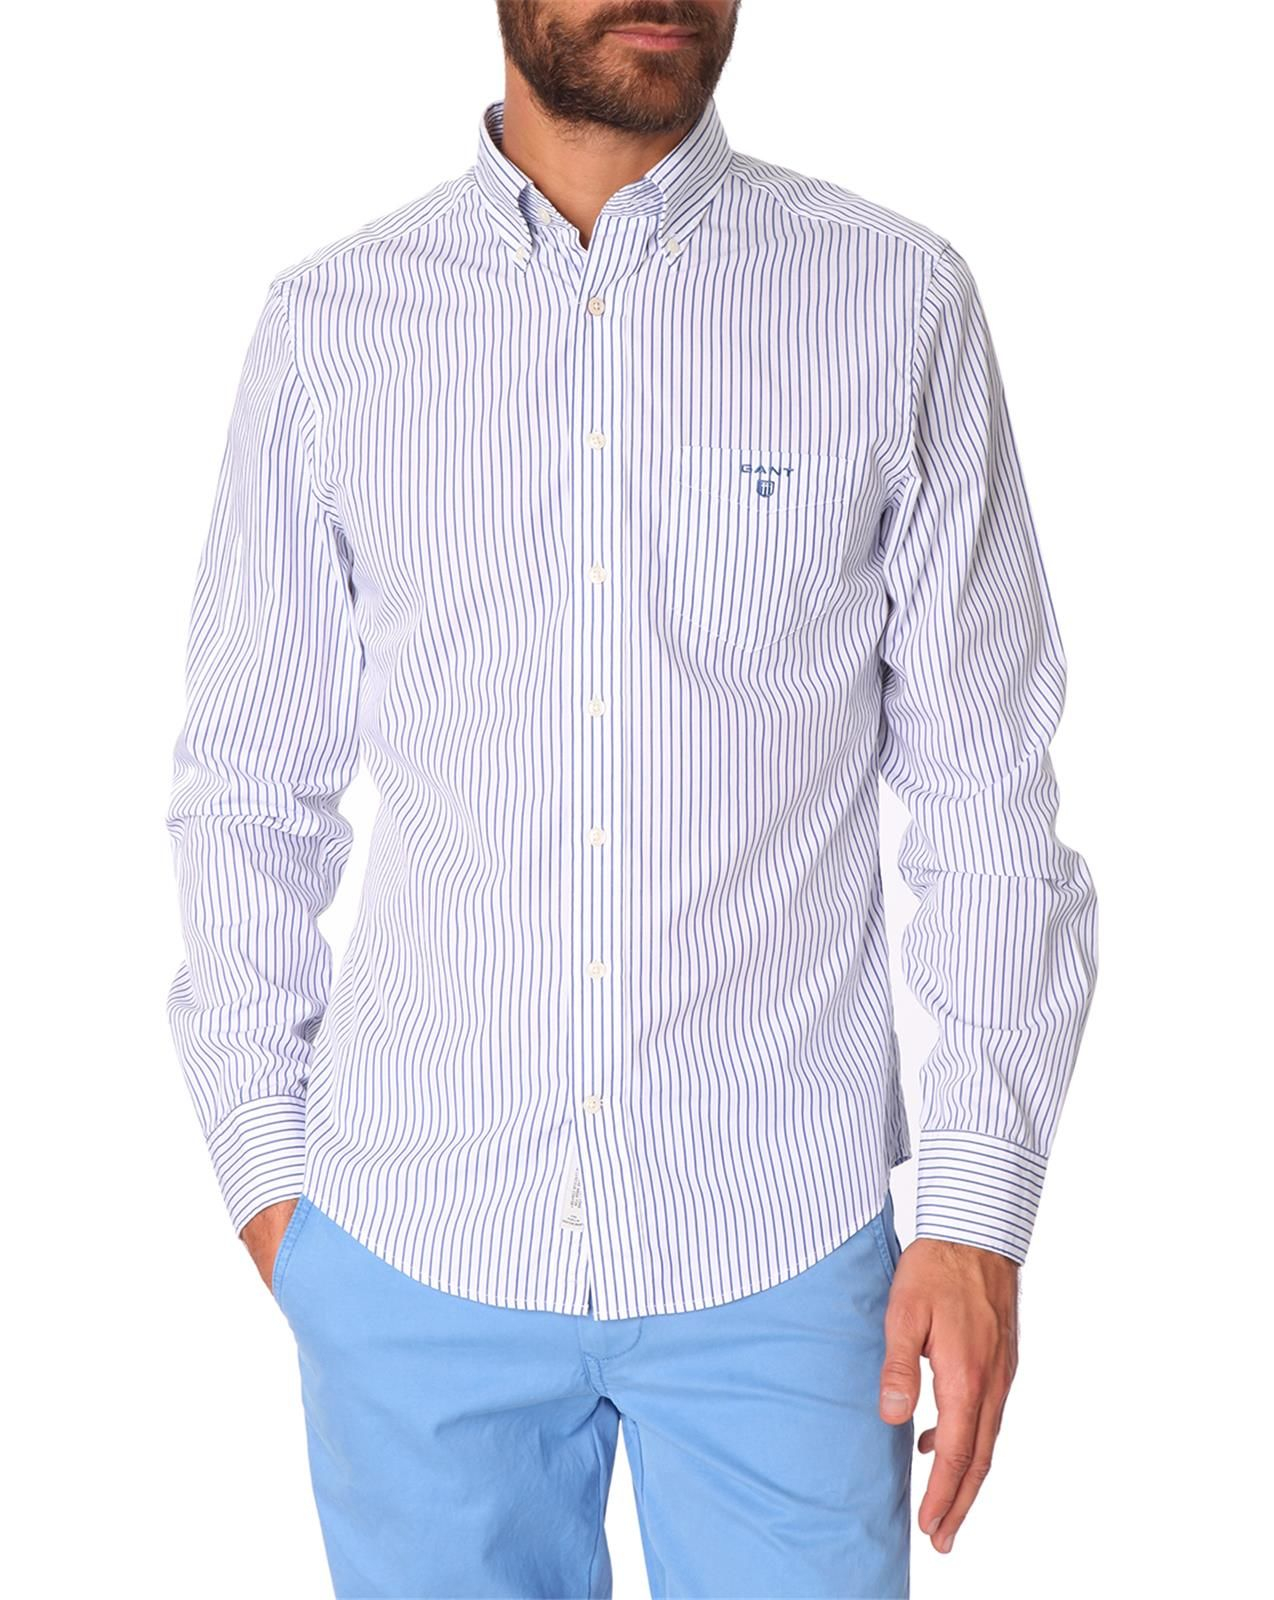 Gant White And Navy Striped Button Down Shirt In White For